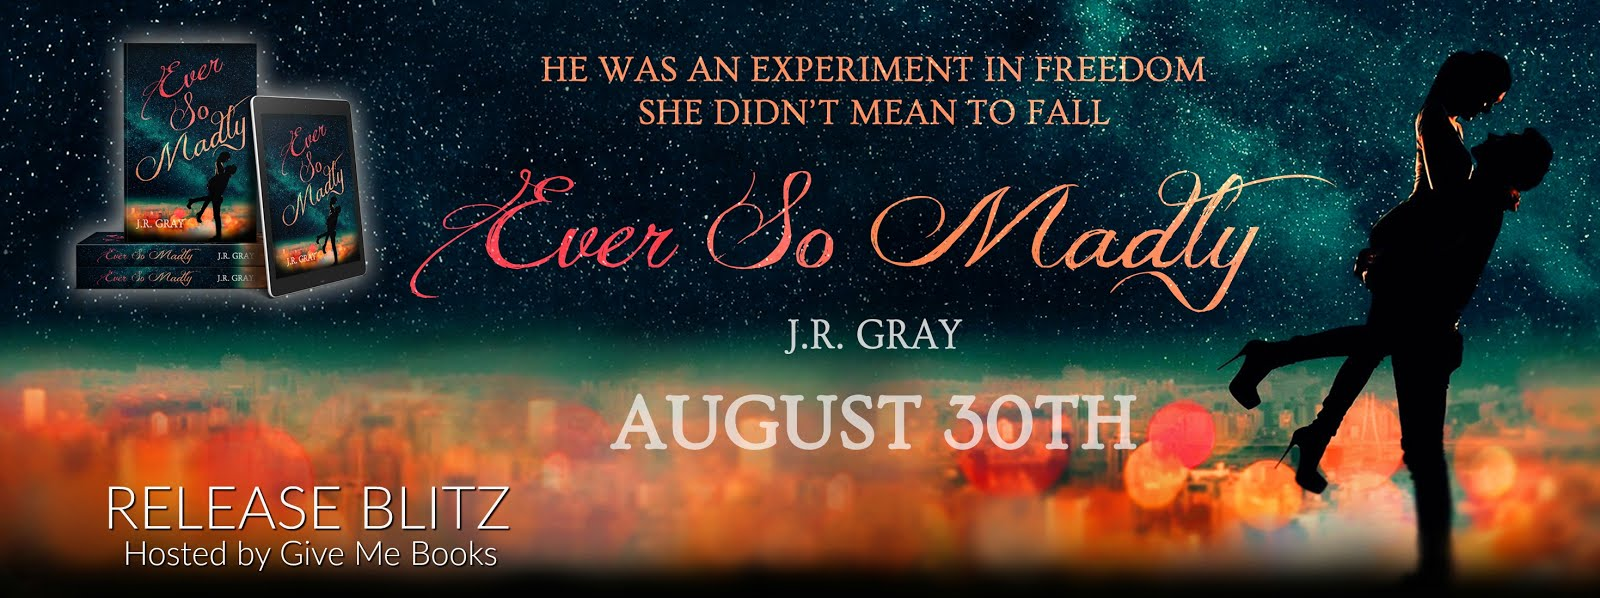 Ever So Madly Release Blitz